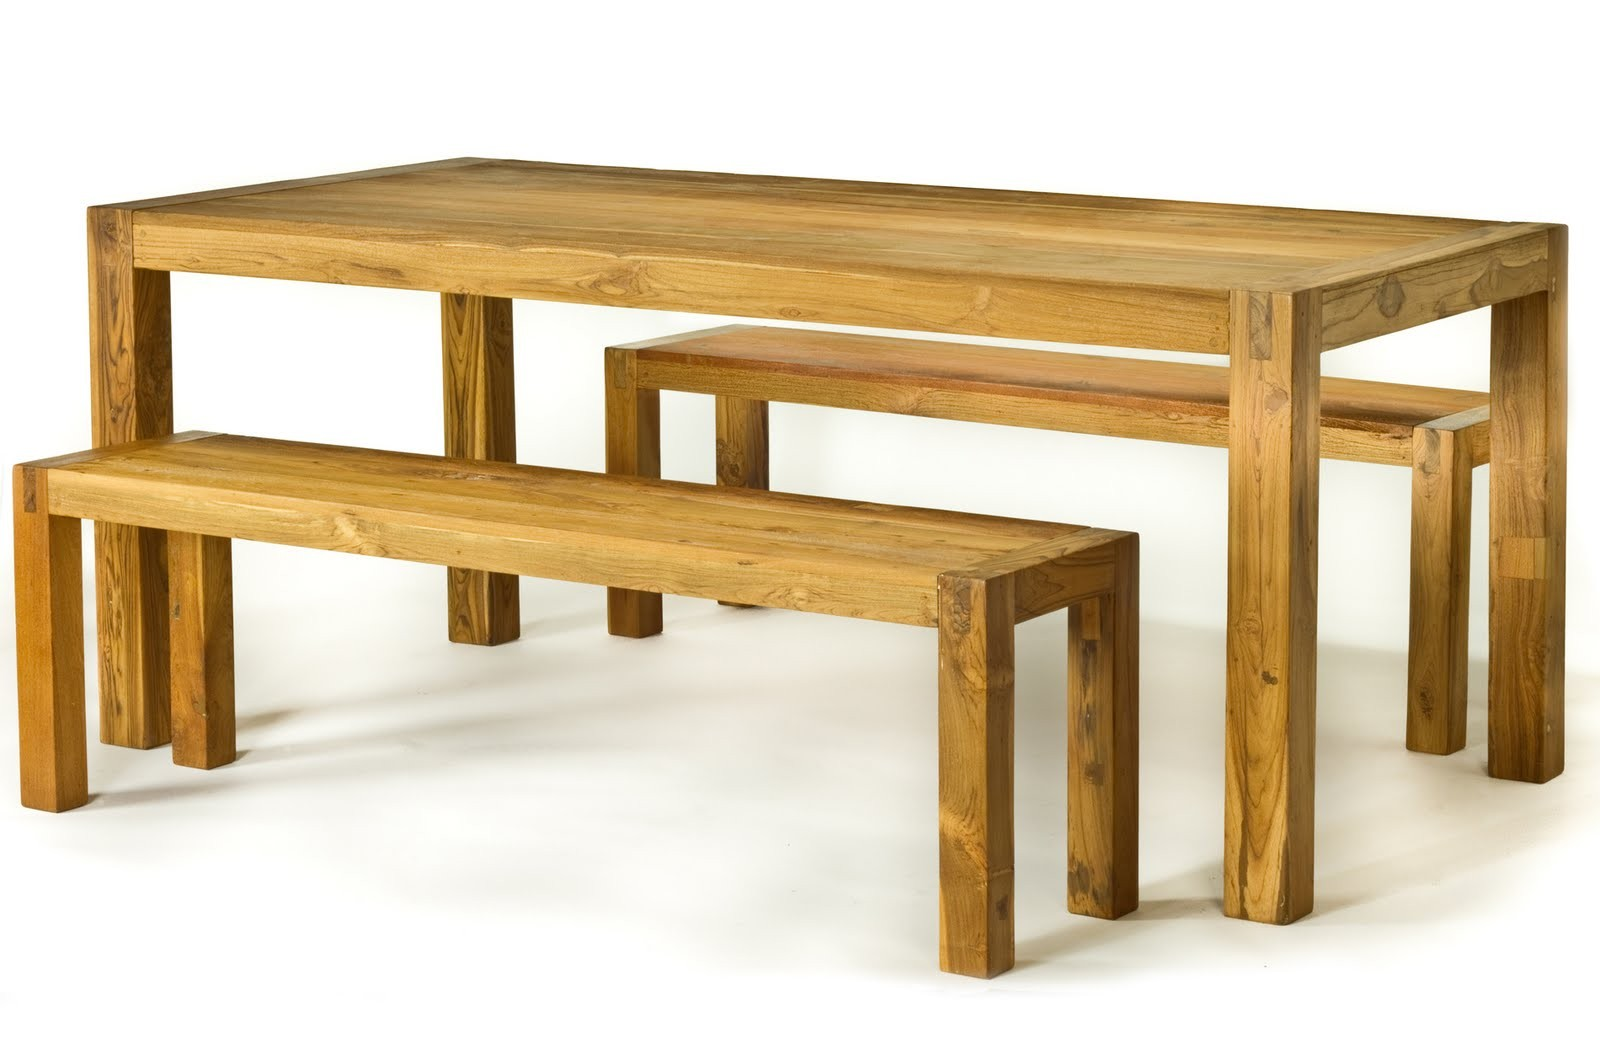 Baby green reclaimed wood dining tables Dining table and bench set